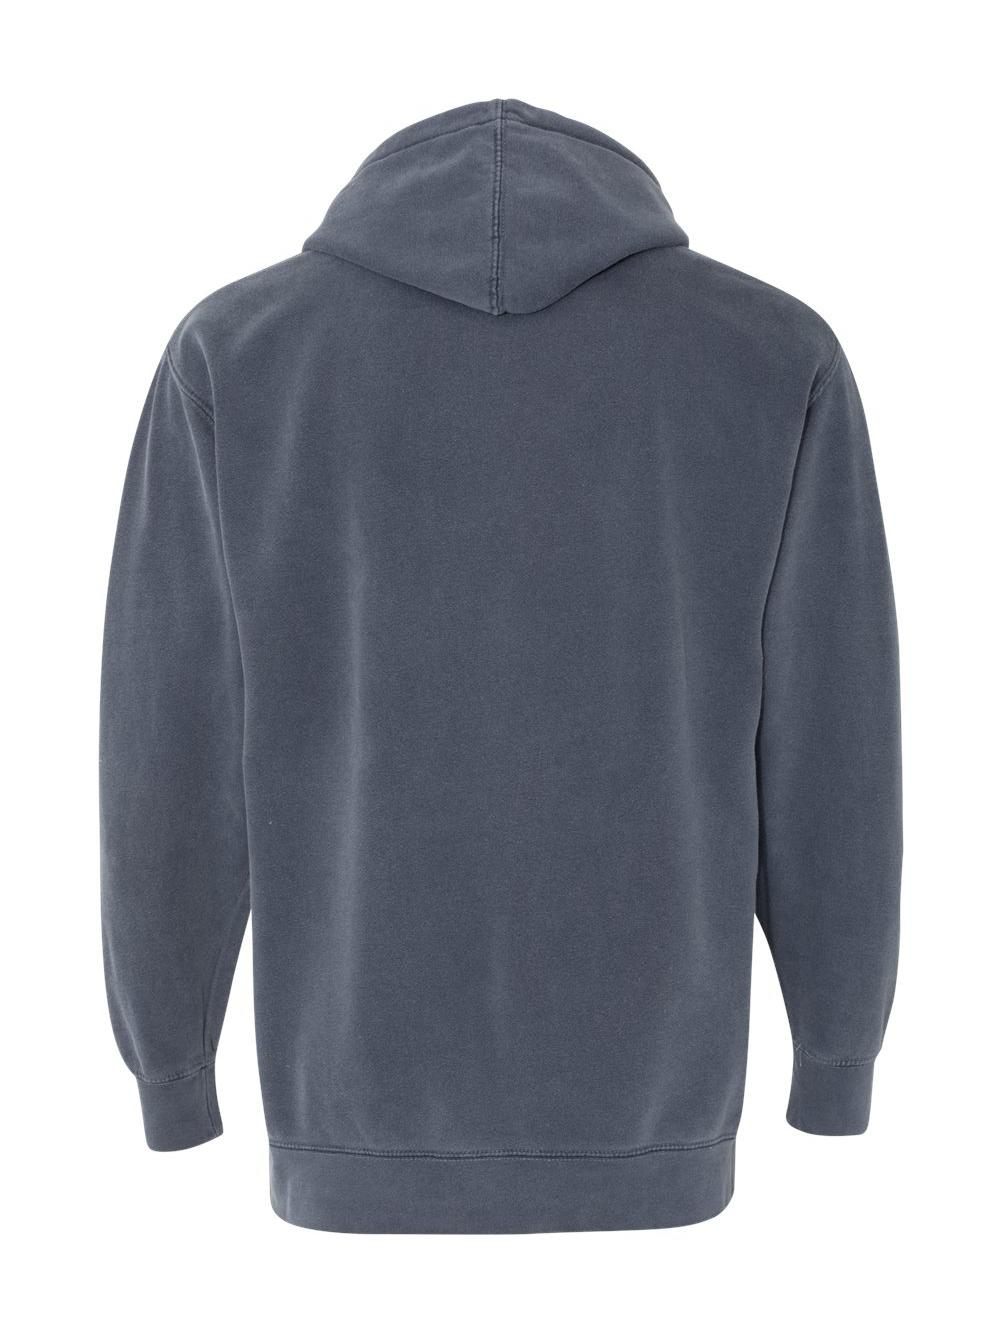 Comfort-Colors-Garment-Dyed-Hooded-Pullover-Sweatshirt-1567 thumbnail 13